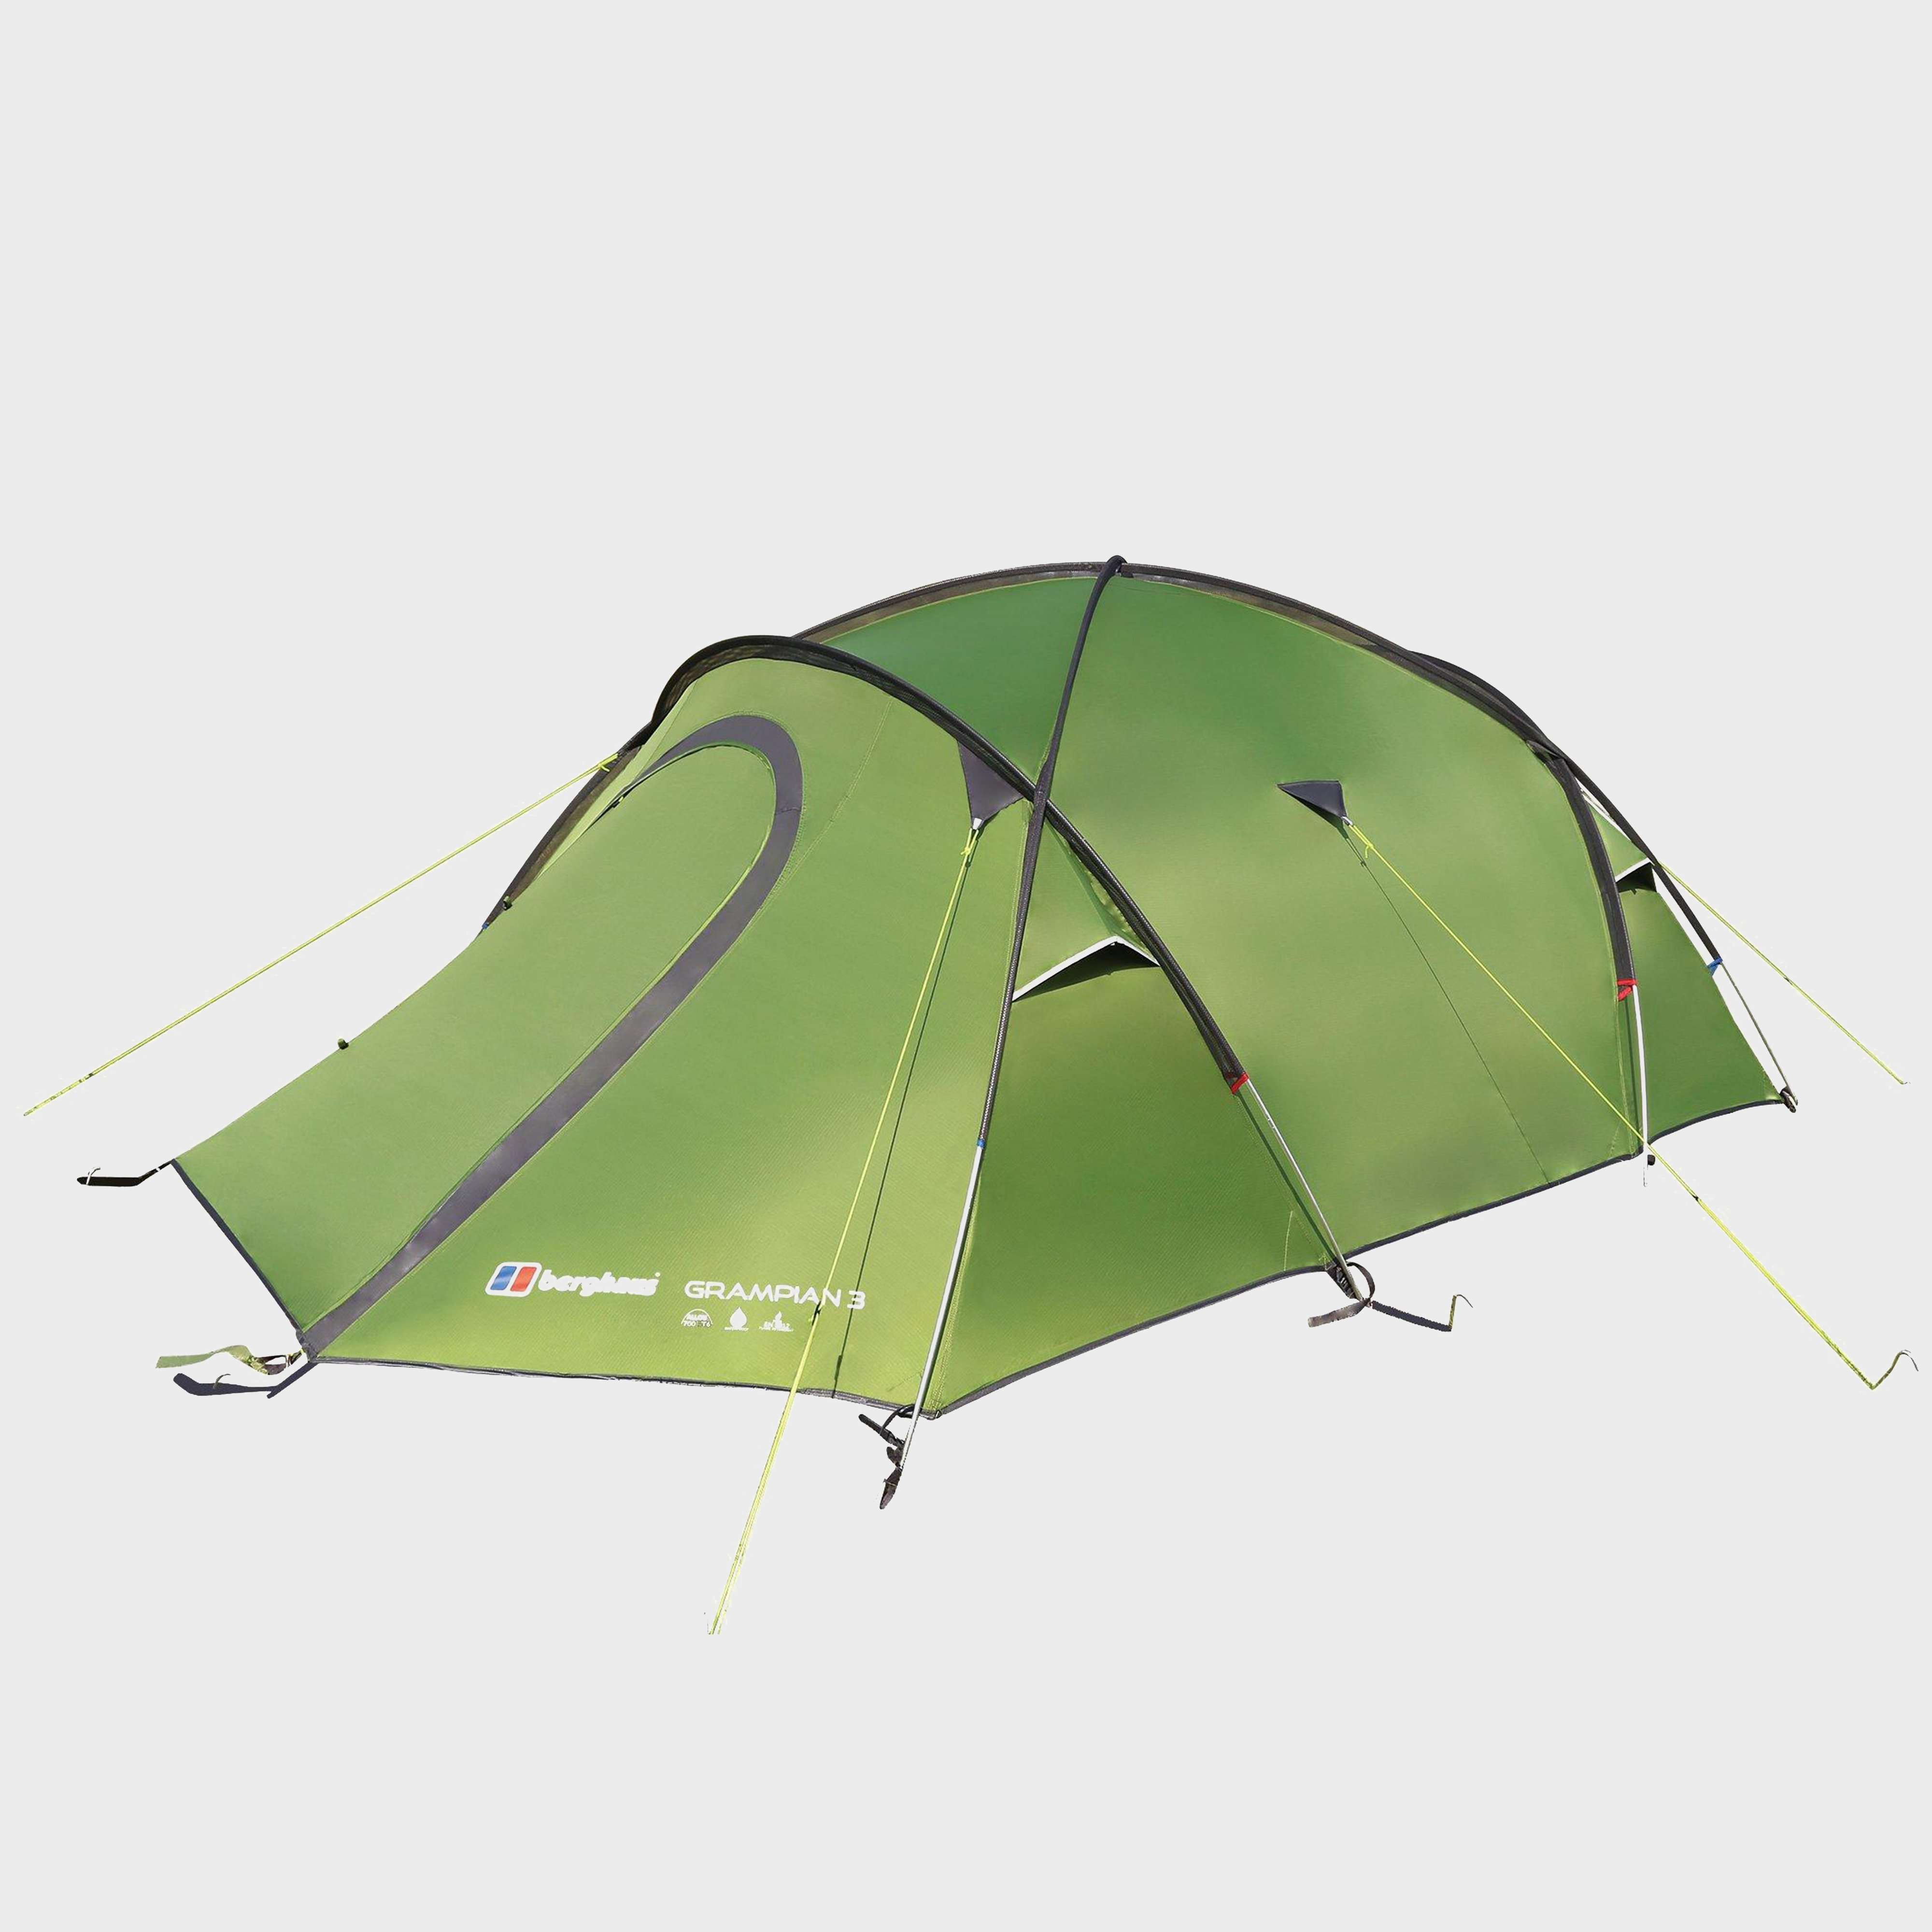 BERGHAUS Grampian 3 Person Tent